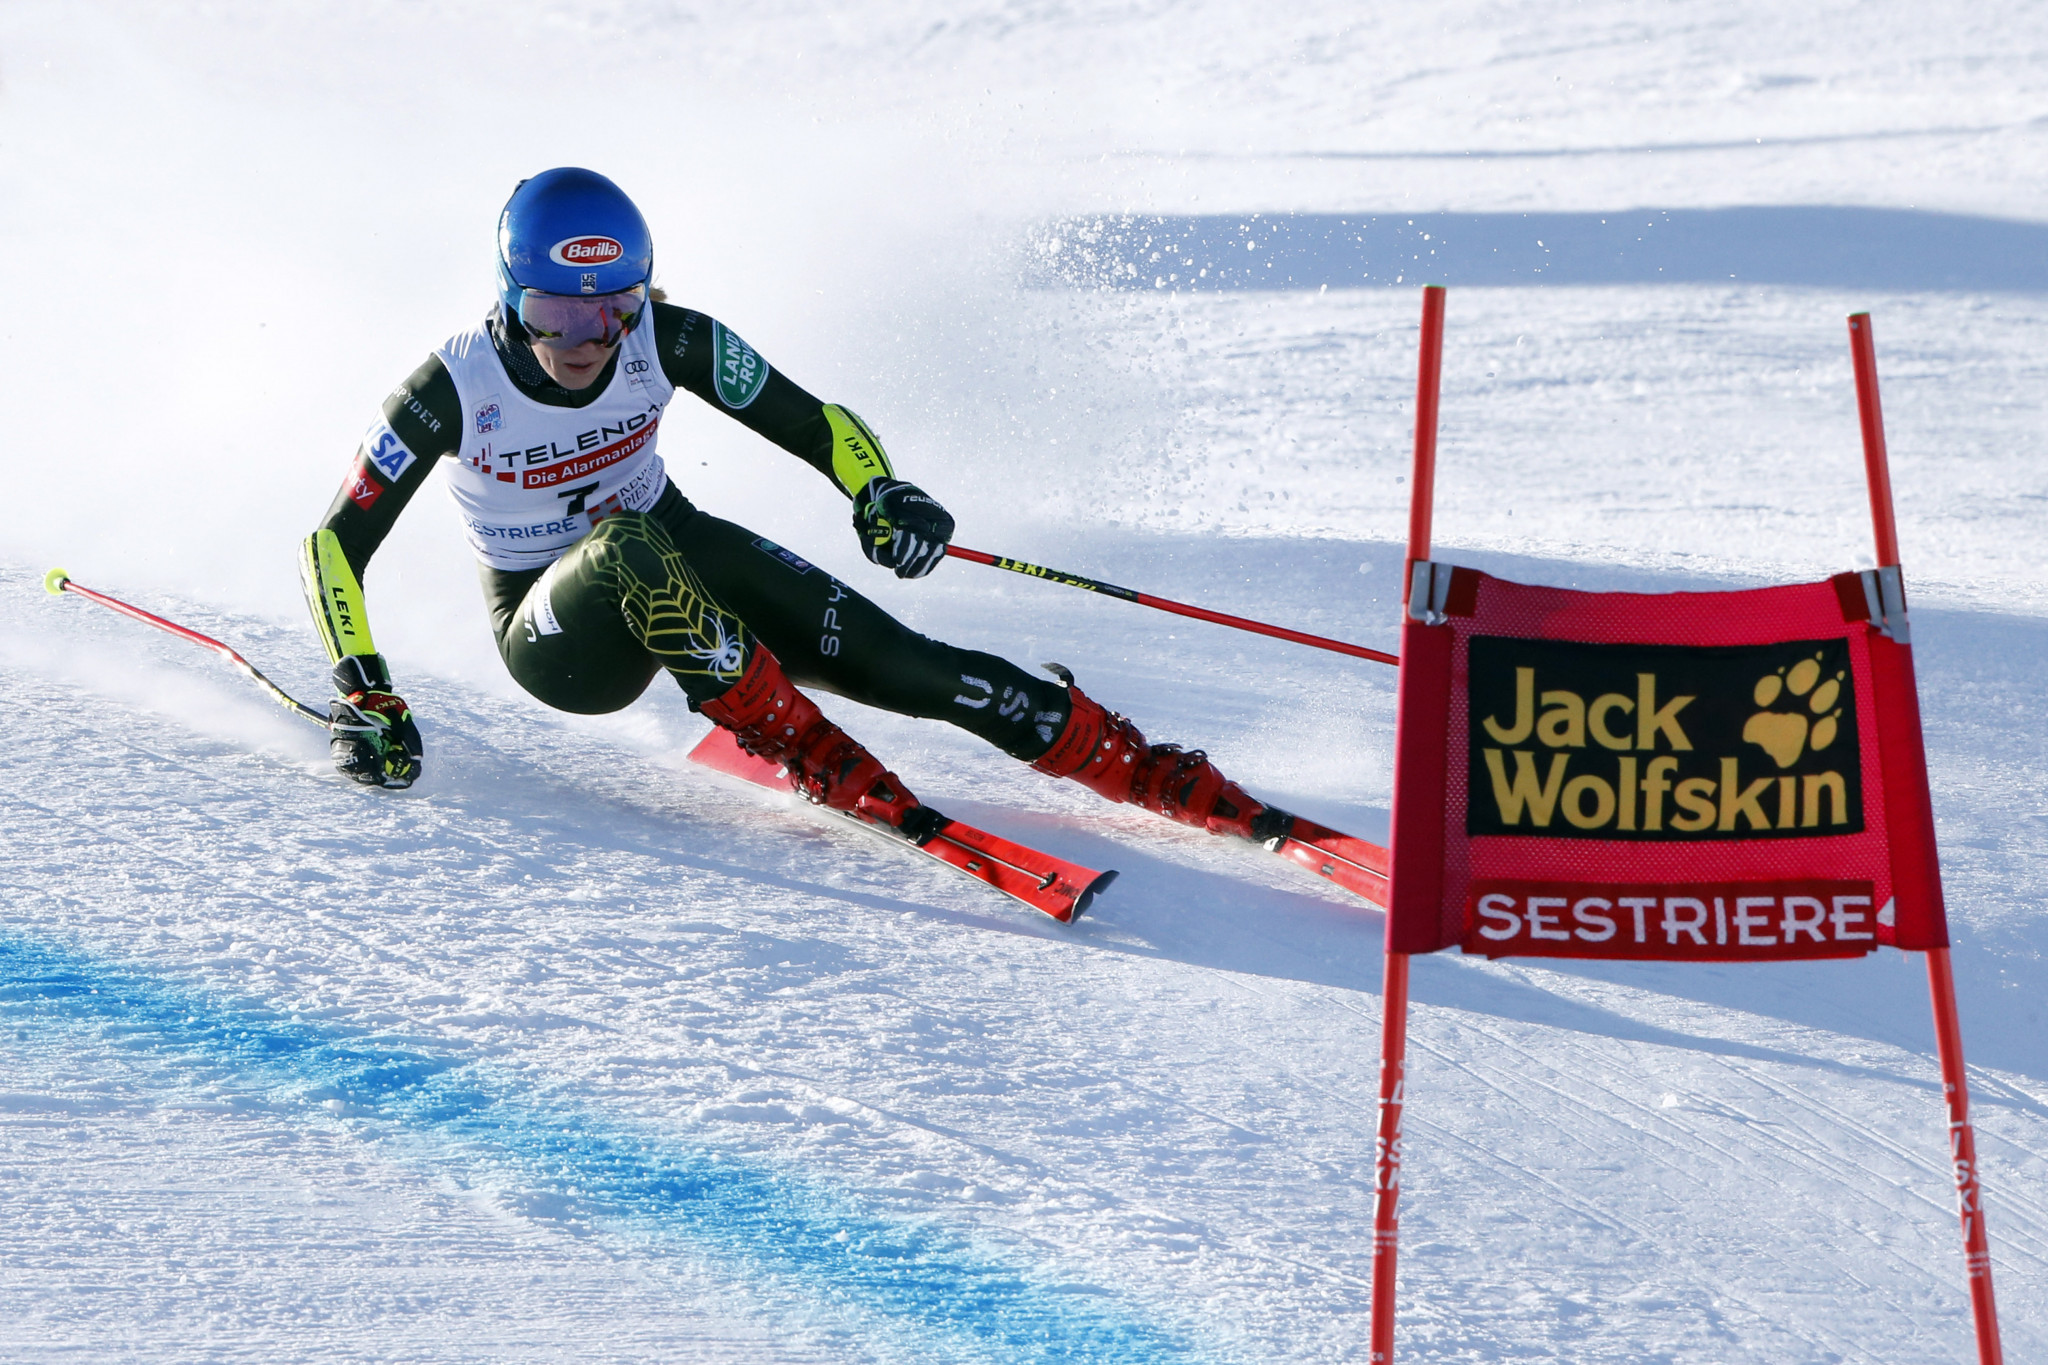 Mikaela Shiffrin is set to compete in her first giant slalom race since January this weekend ©Getty Images